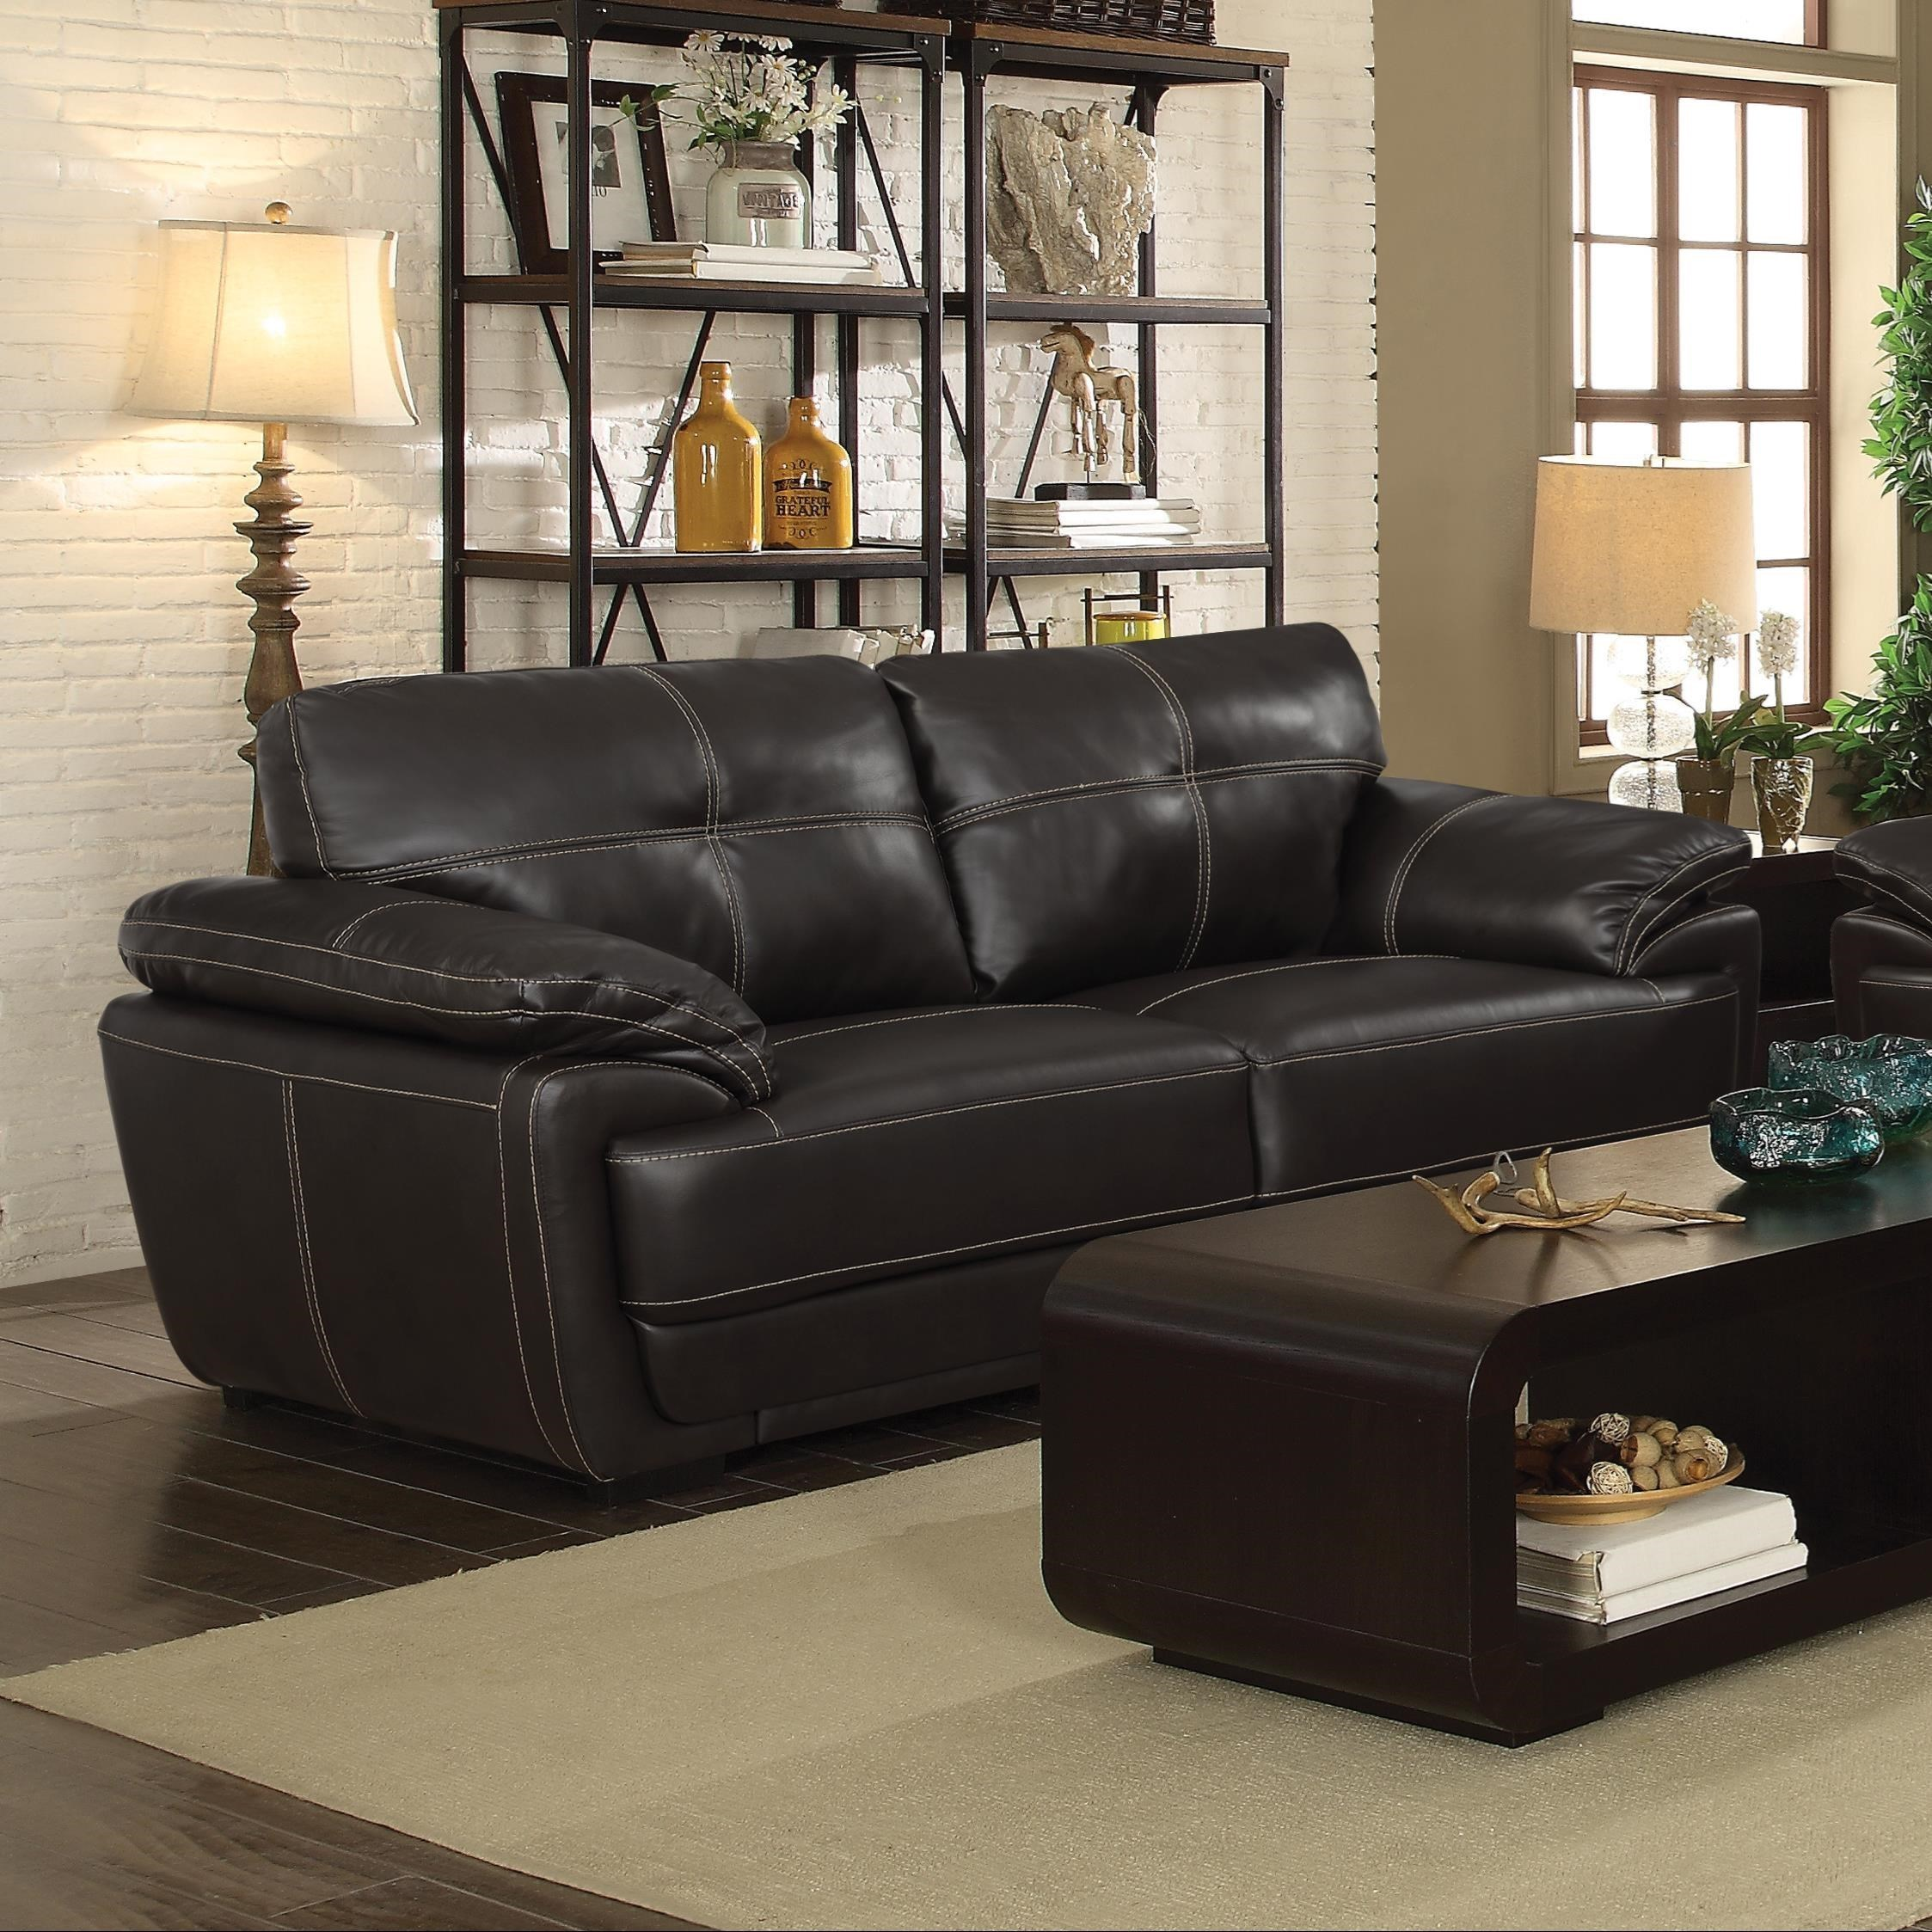 Coaster zenon two cushion sofa with baseball stitching Baseball sofa